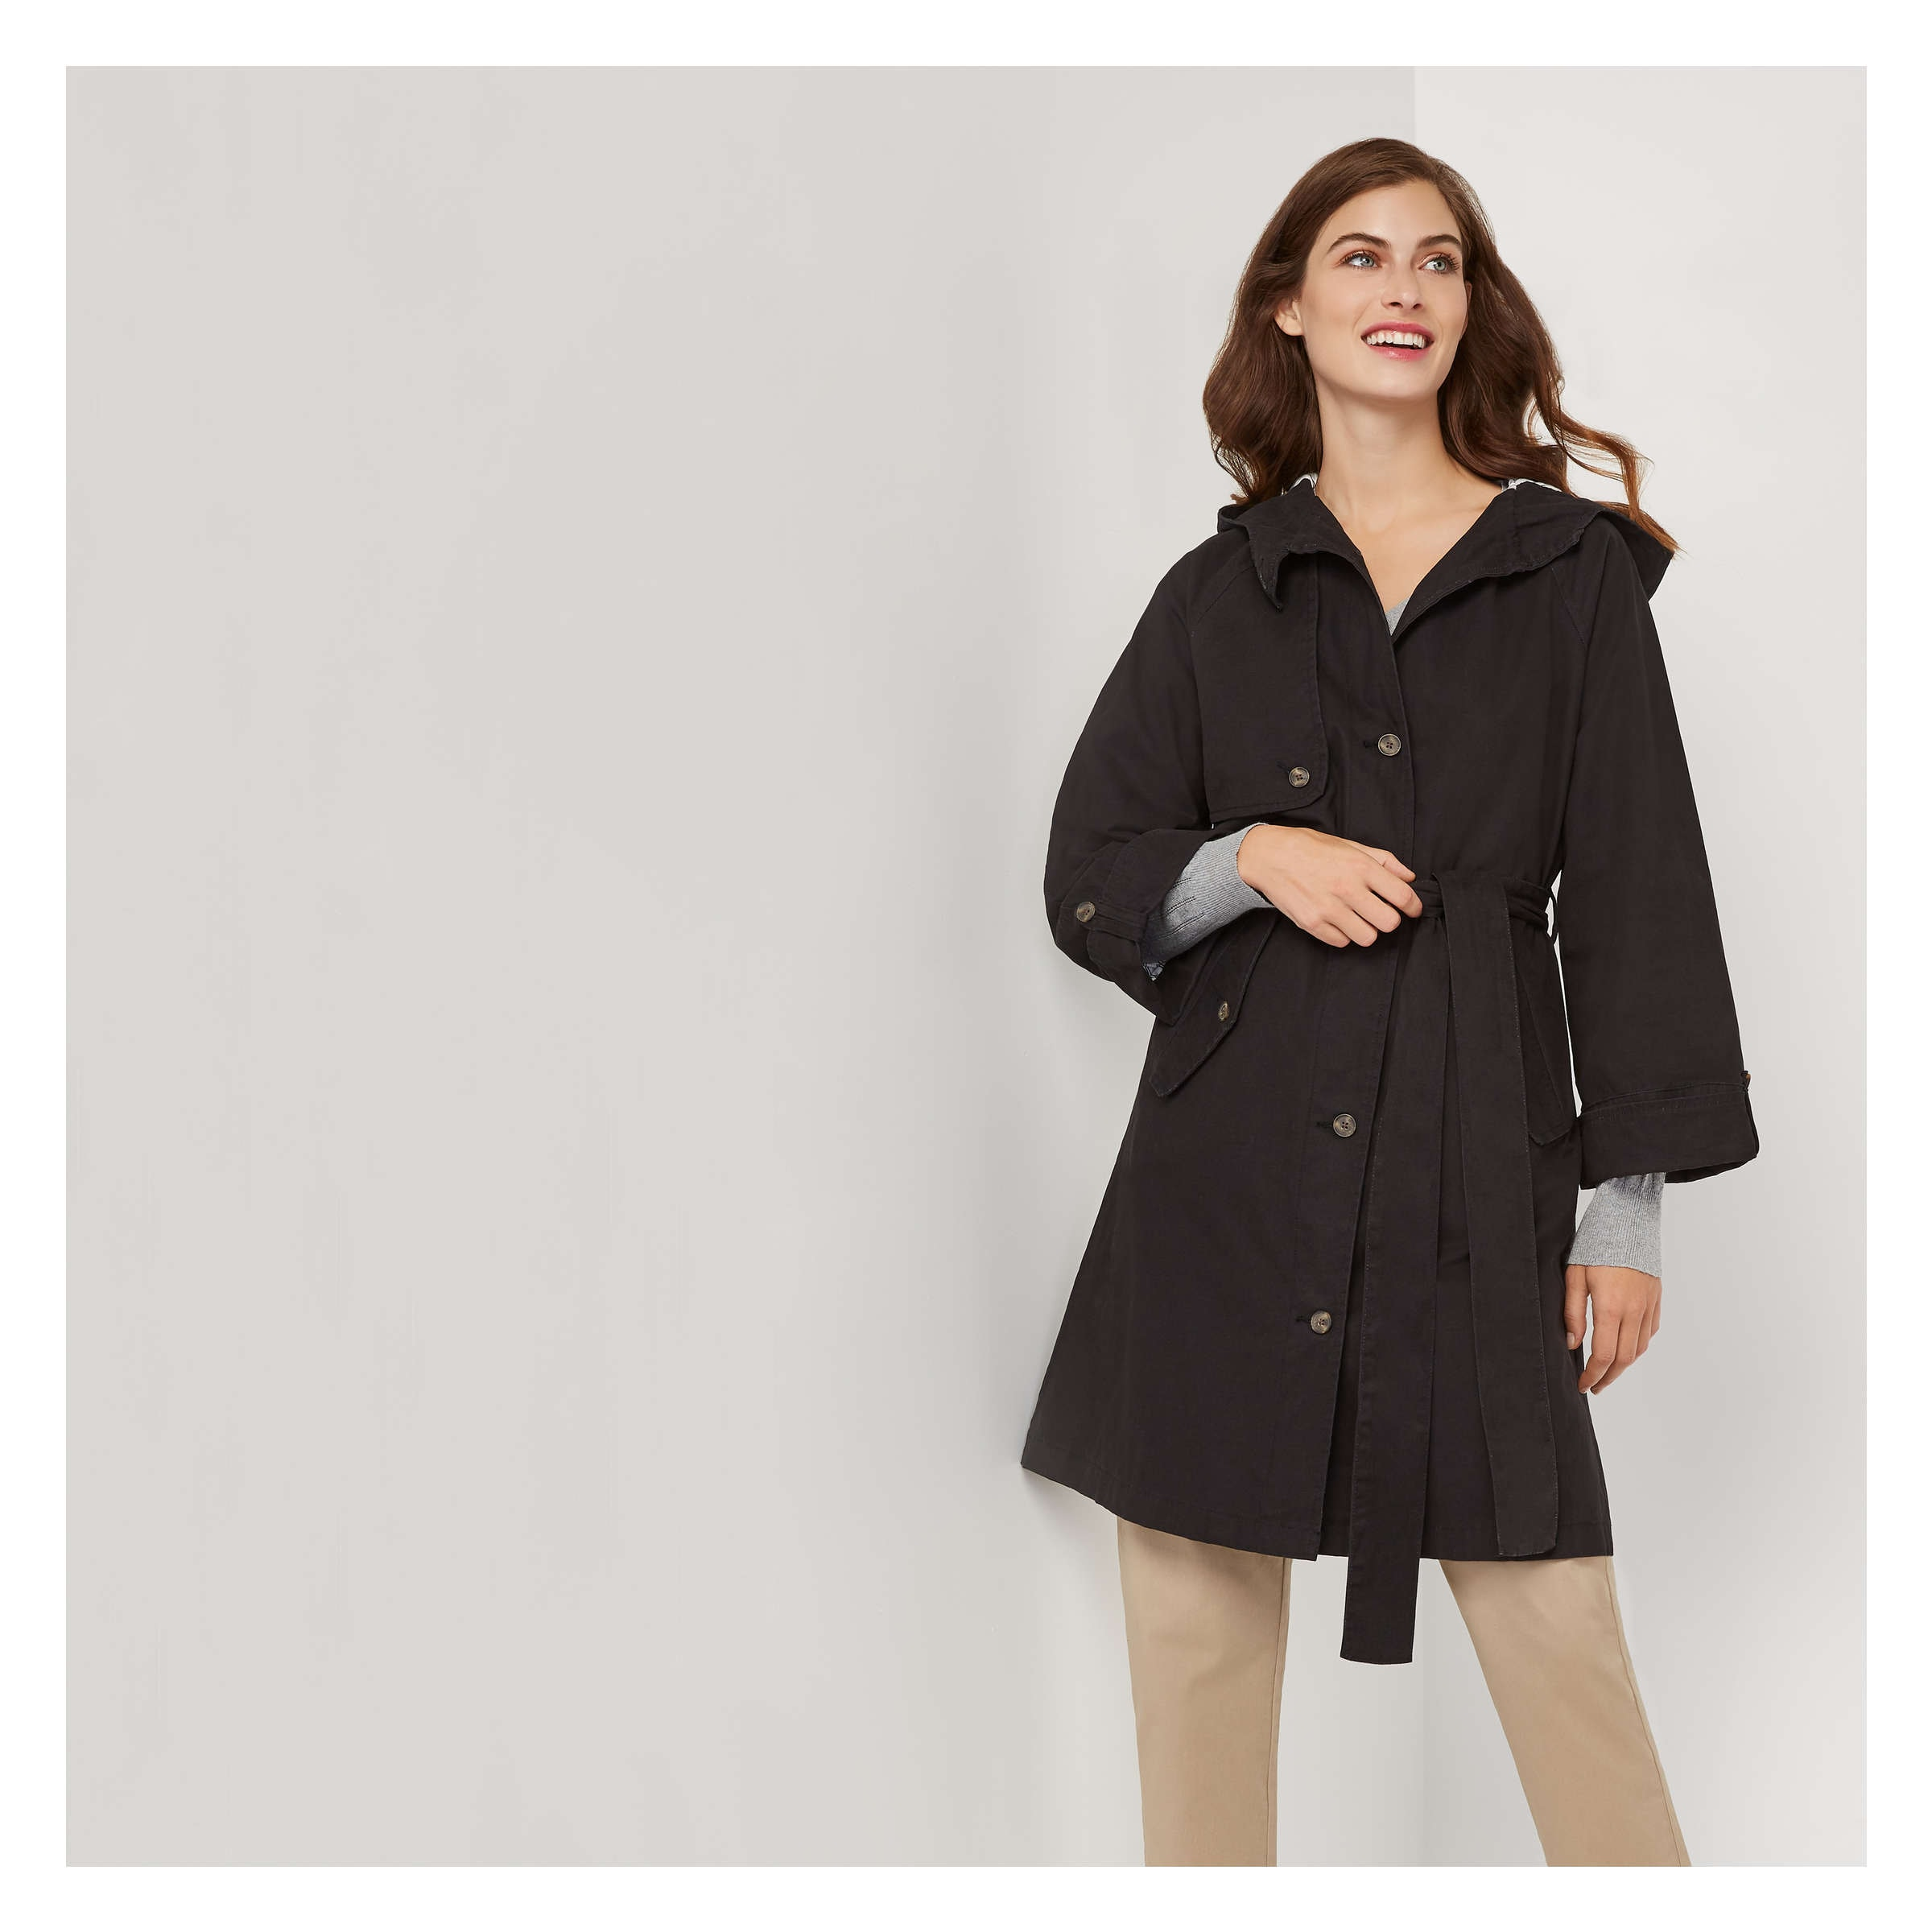 d2f5040f5e252 Hooded Trench Coat in JF Black from Joe Fresh